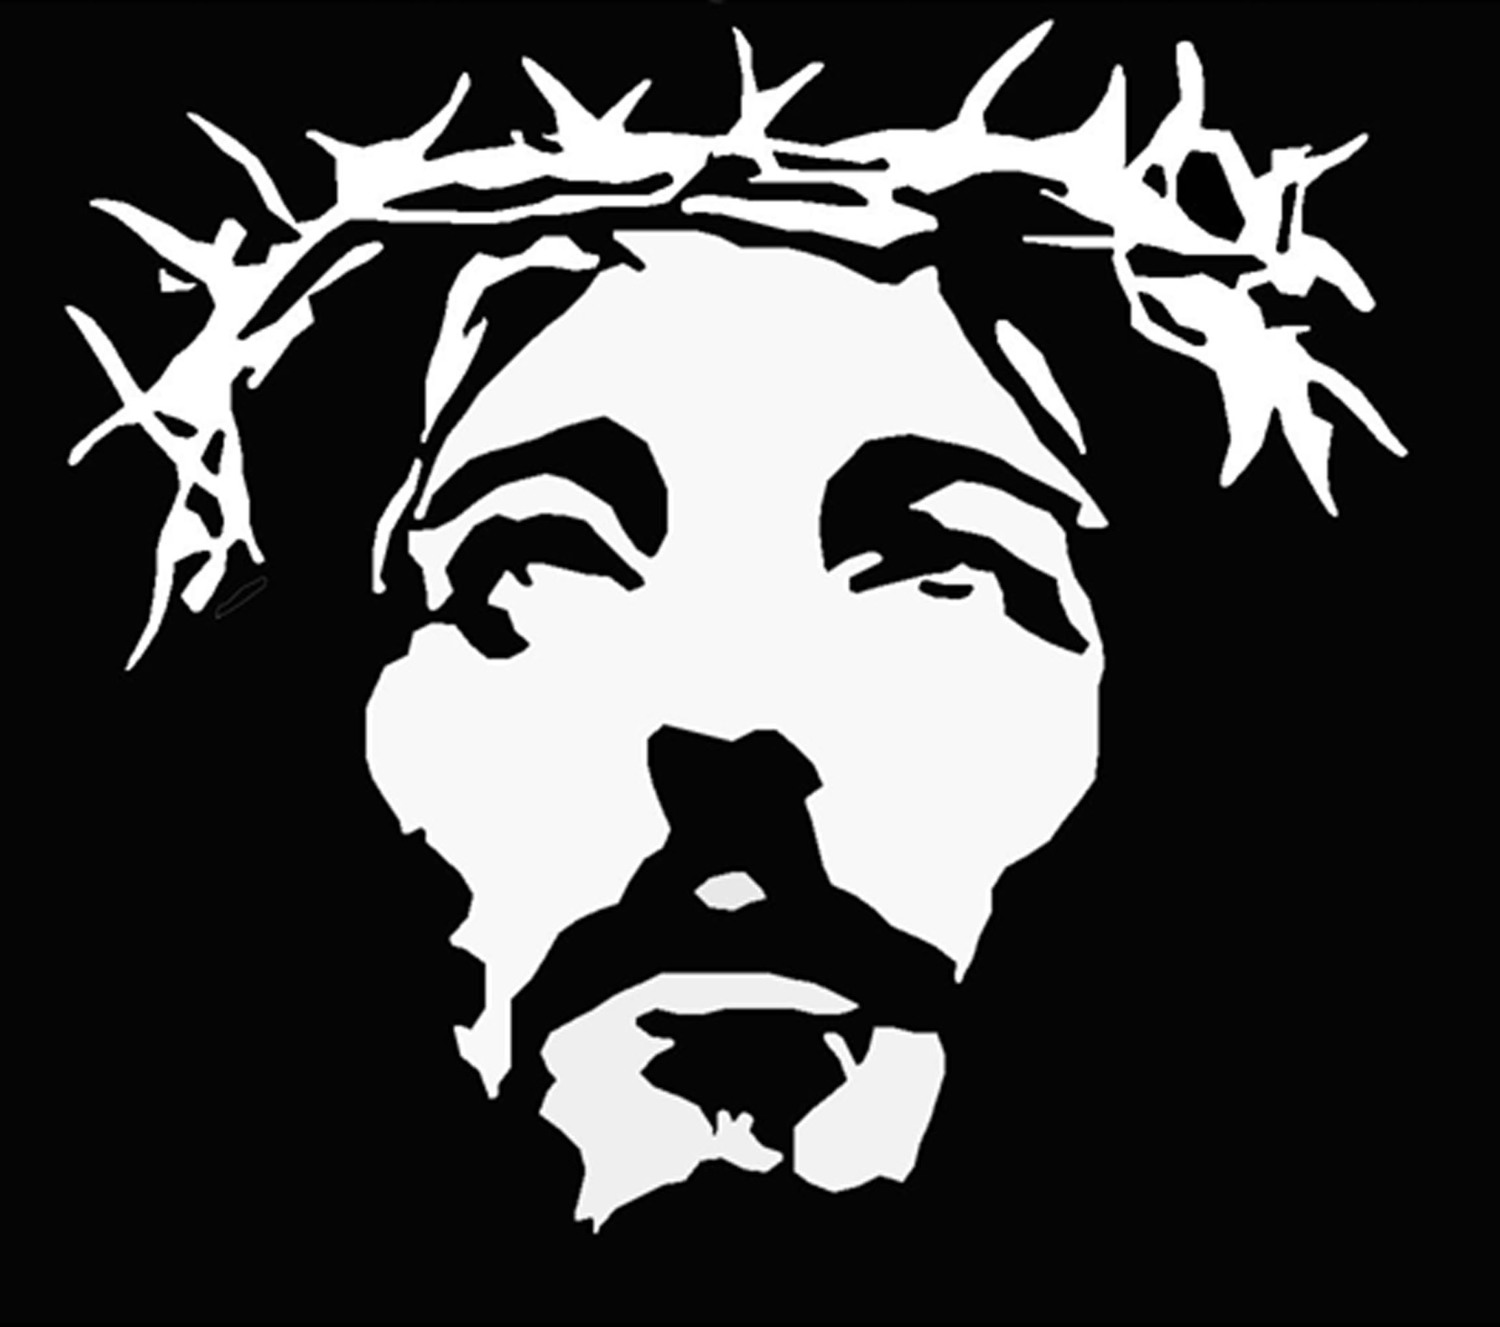 Black And White Images Of Jesus Group with 84+ items.